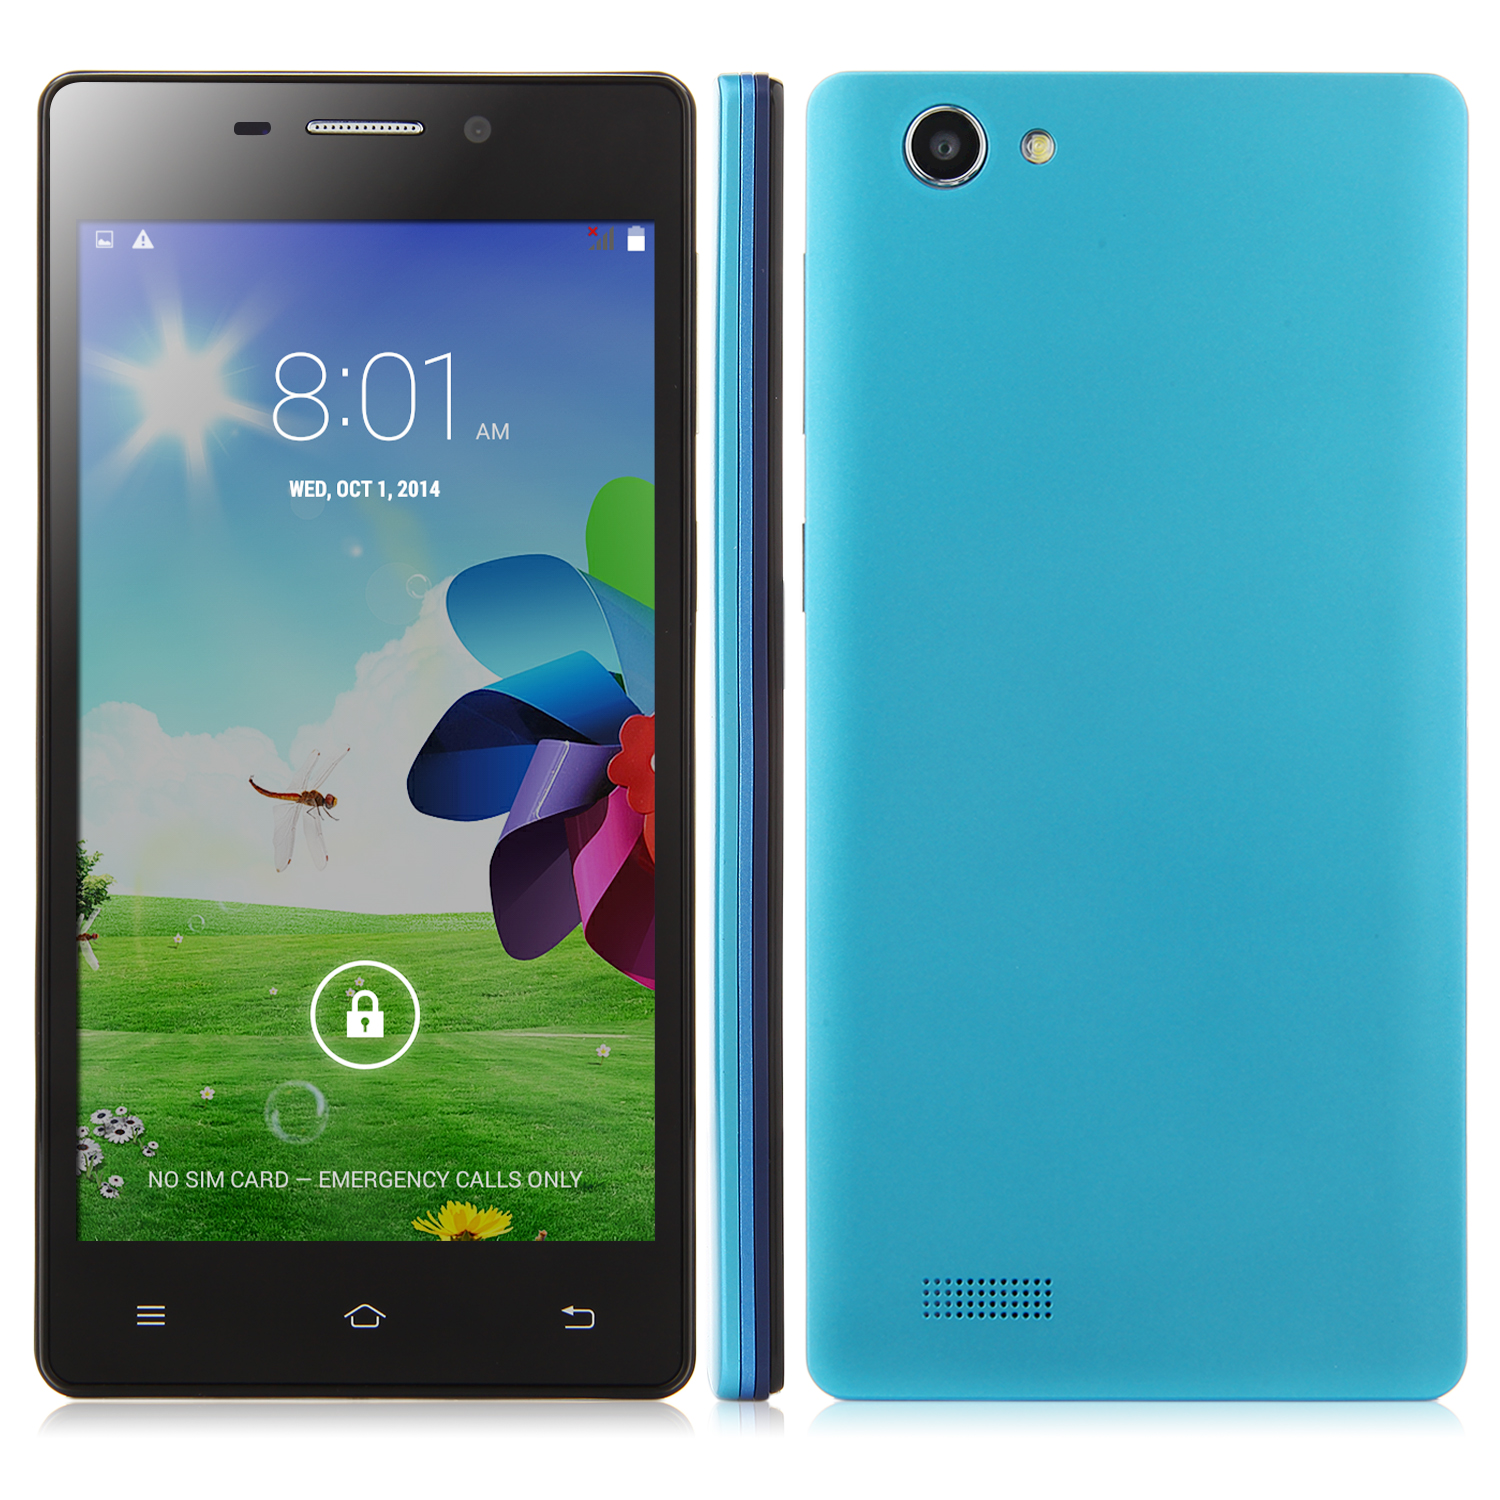 X2 Smartphone Android 4.4 MTK6572W 5.0 Inch QHD Screen Smart Wake Blue